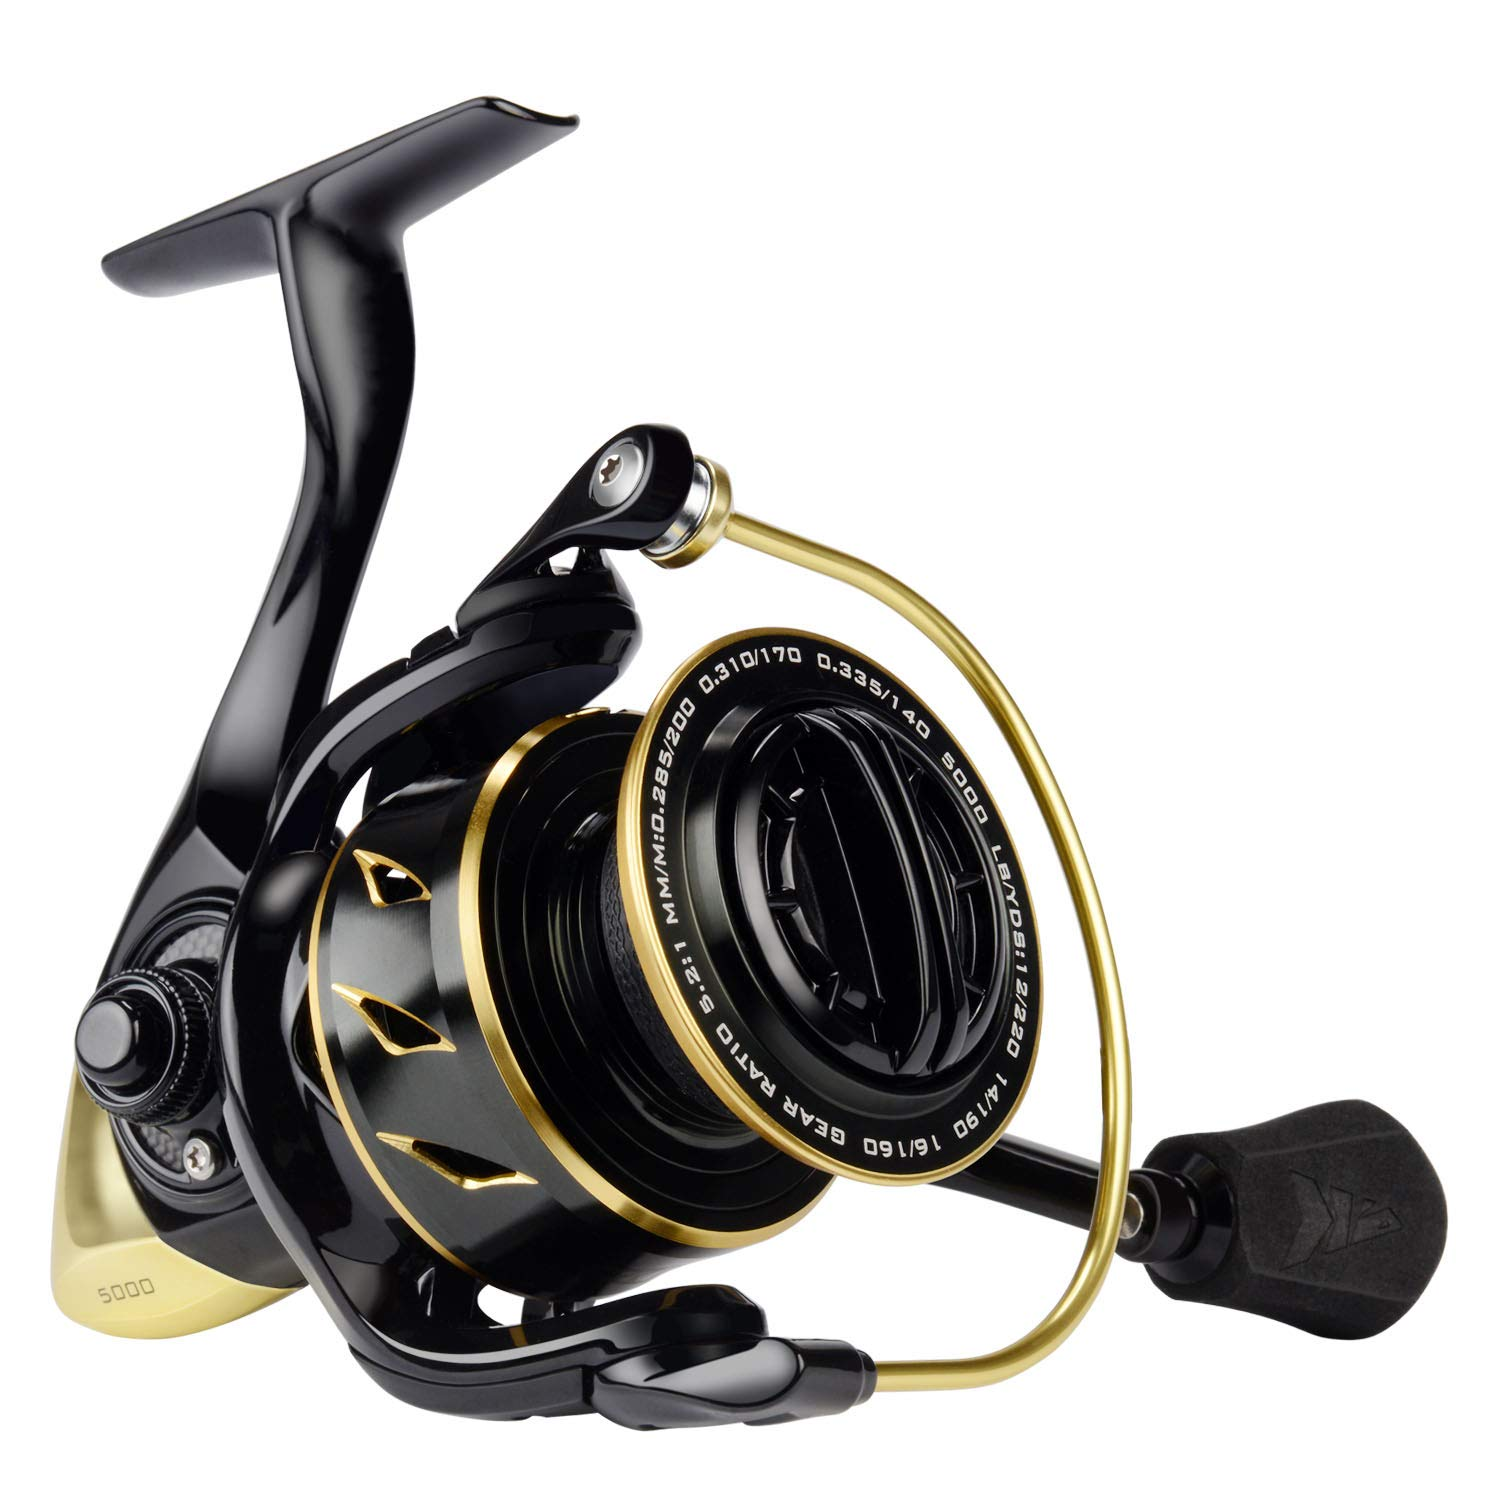 KastKing Sharky III Gold Fishing Reel, Zero-Flex Aluminum Body Spinning Reel, 39.5 Lbs Carbon Drag, 10 1 Double Shielded Ball Bearings, 5.2 1 Gear Ratio, Inshore or Freshwater.